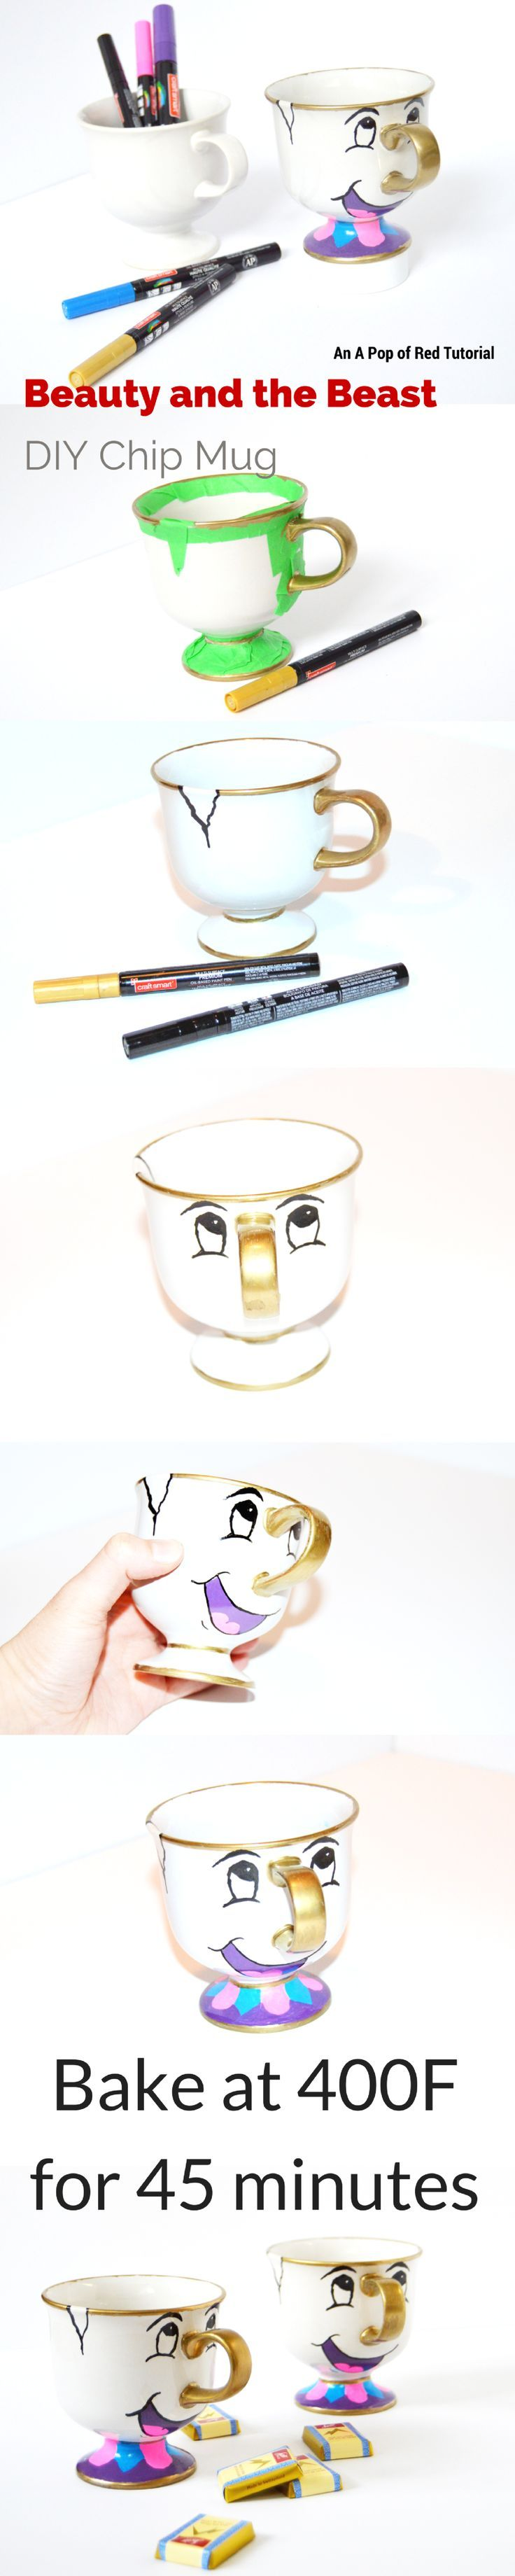 Paint pens for wood crafts - Diy Beauty And The Beast Mug A Sharpie Craft Or Oil Based Paint Pen